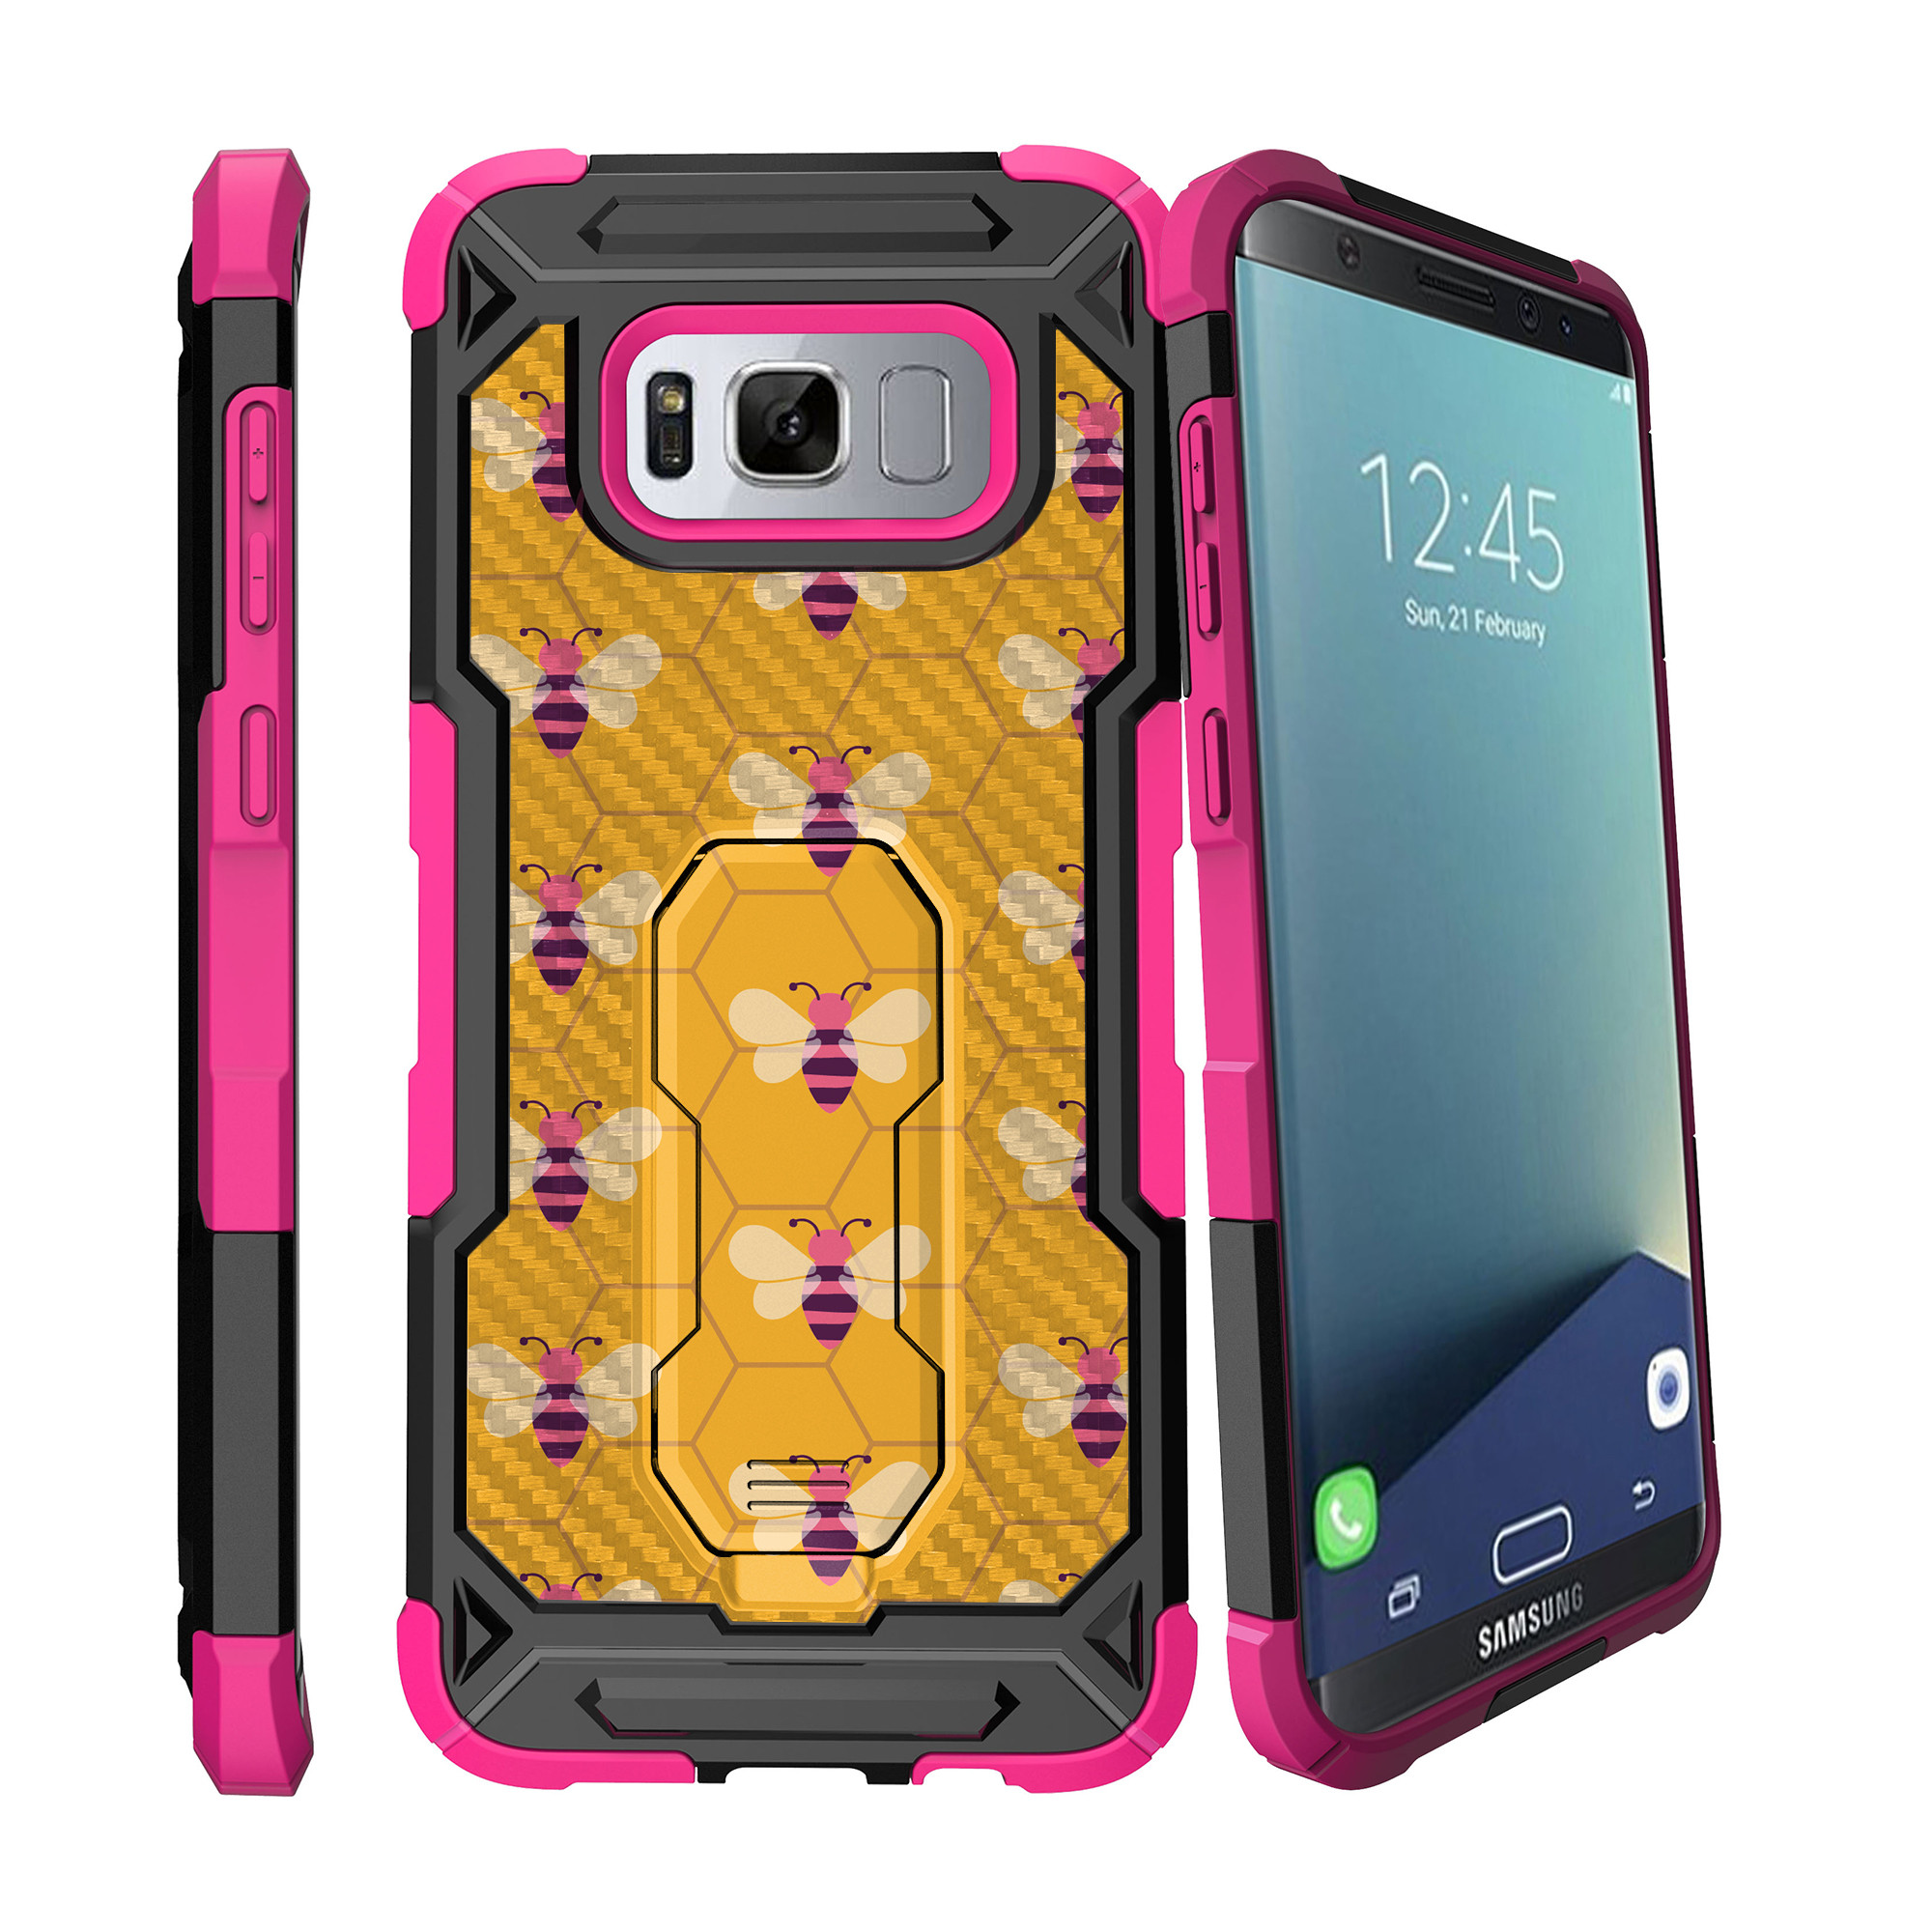 Case for Samsung Galaxy S8 Plus Version [ UFO Defense Case ][Galaxy S8 PLUS SM-G955][Pink Silicone] Carbon Fiber Texture Case with Holster + Stand Unique Collection